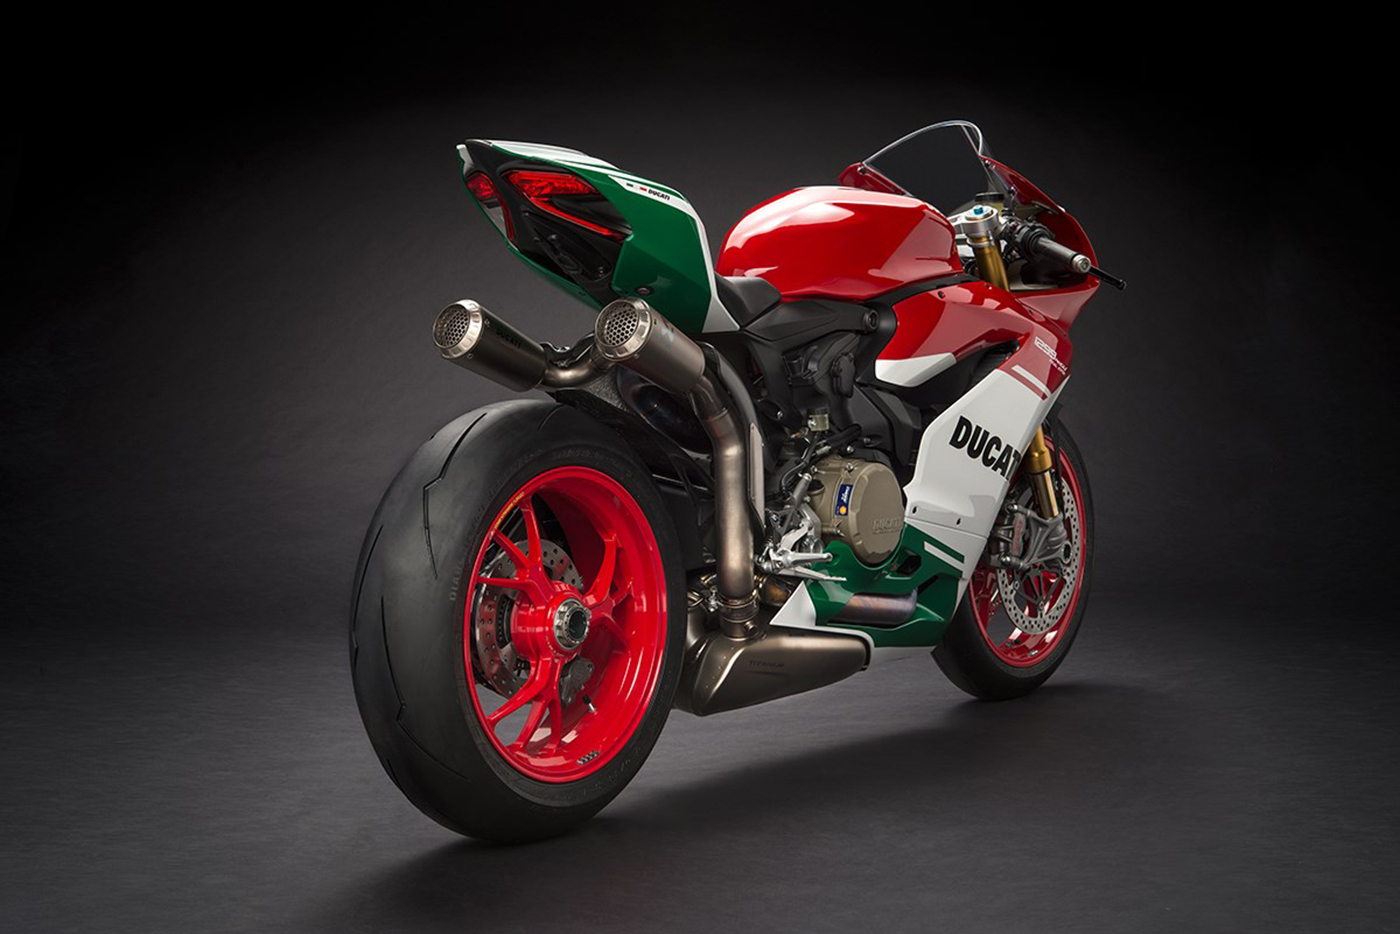 ducati-1299-panigale-r-final-edition-16.jpg